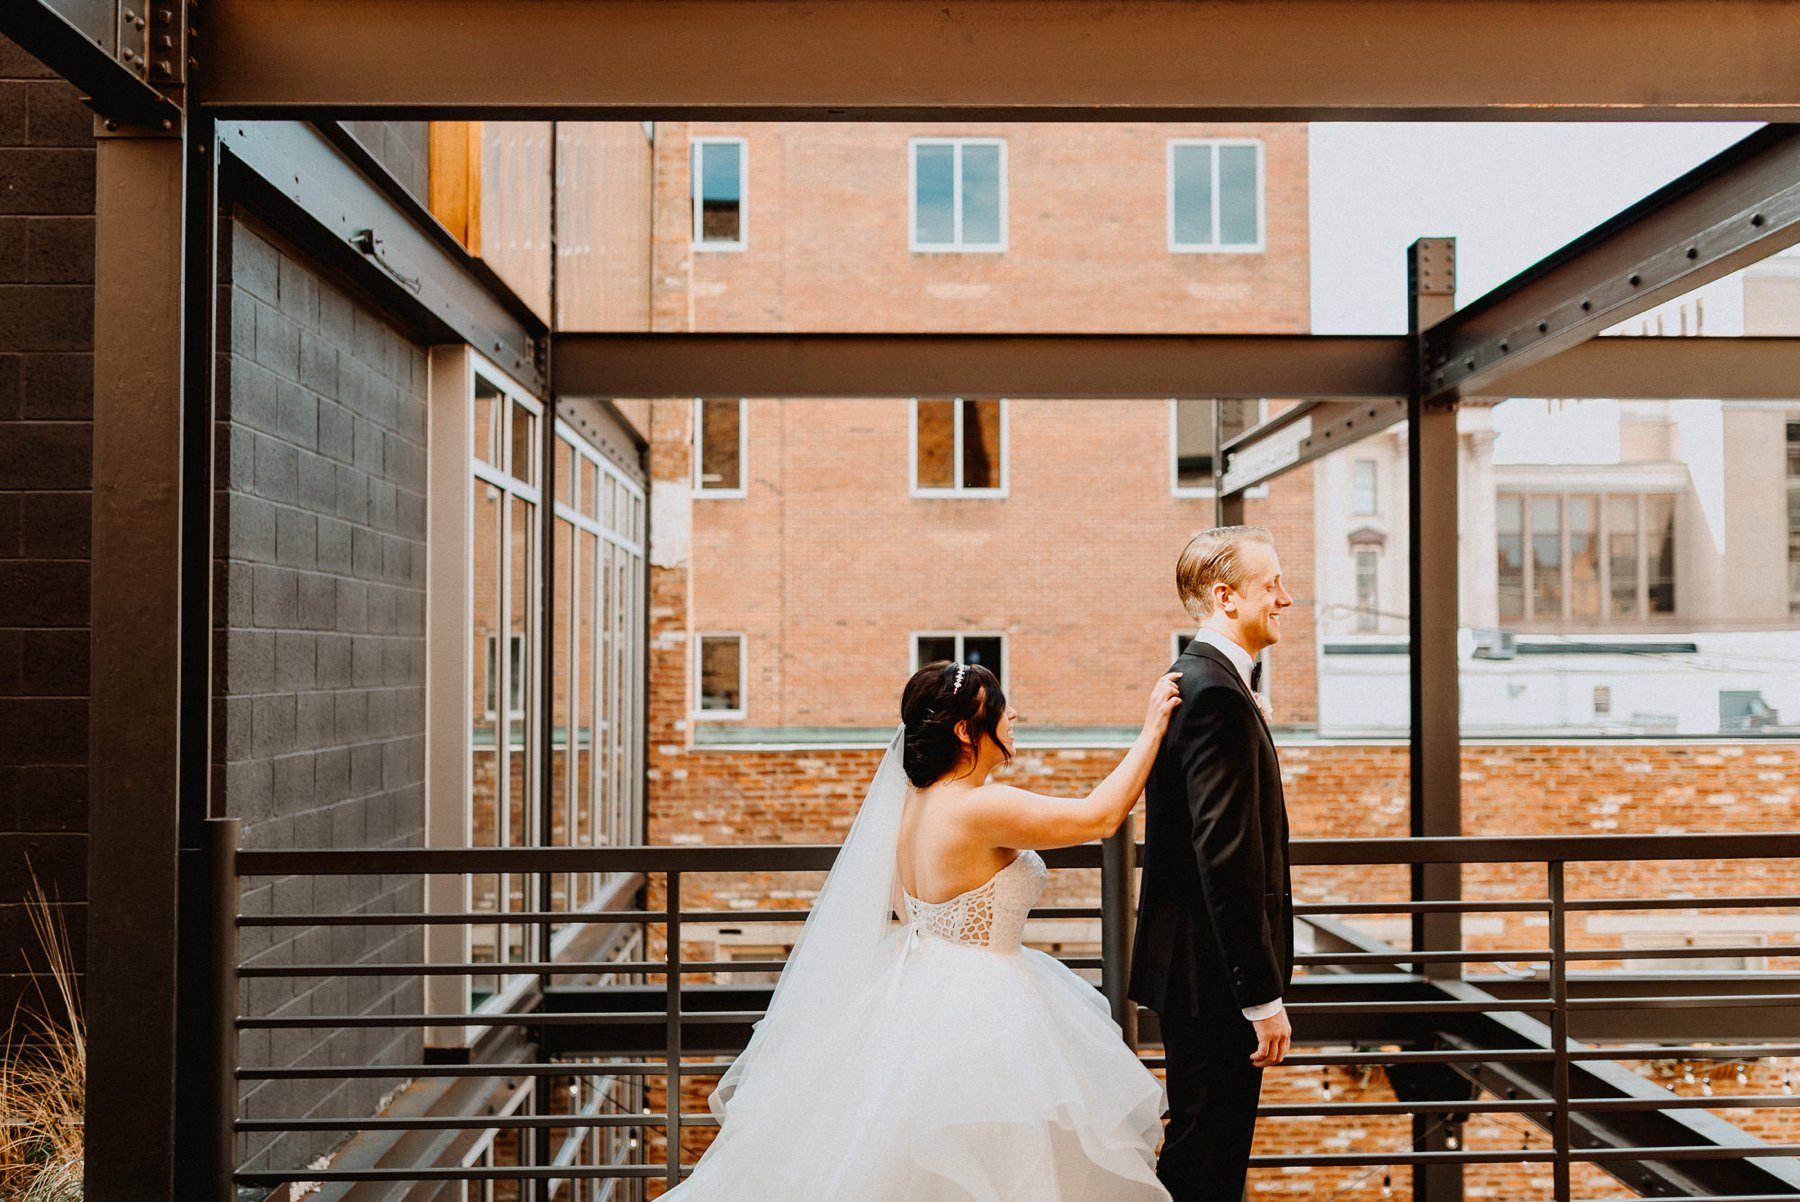 excelsior_lancaster_wedding_photographeer-015.jpg